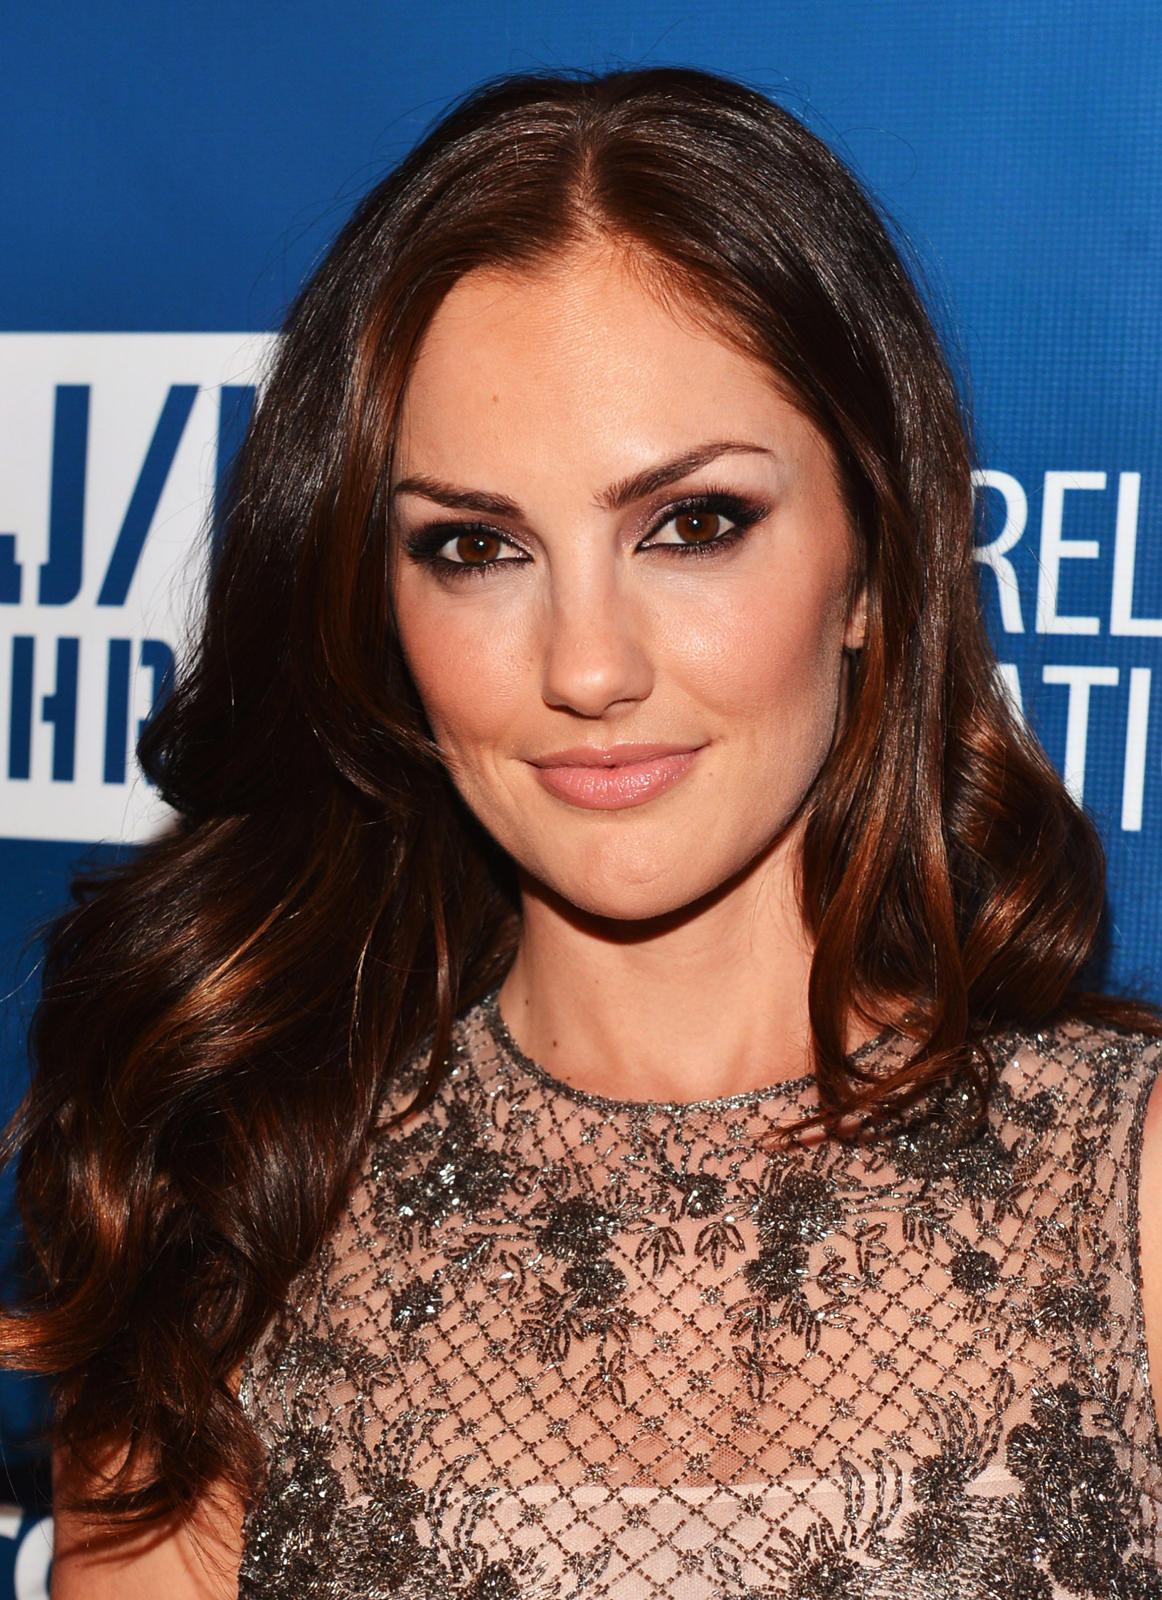 Minka Kelly Photo Gallery